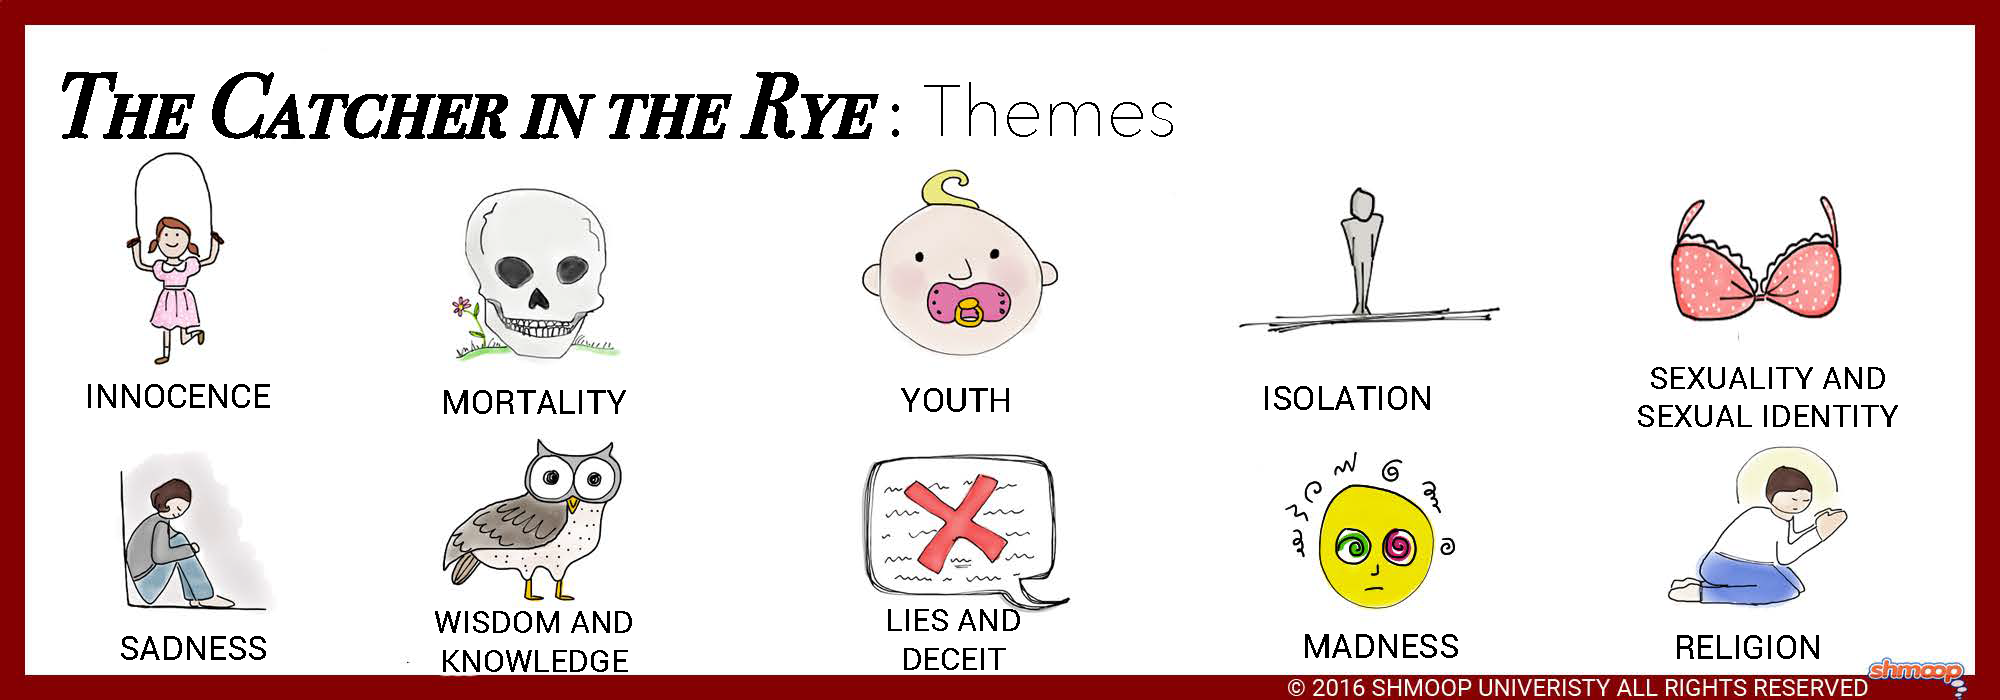 Holden Caulfield In The Catcher In The Rye Chart